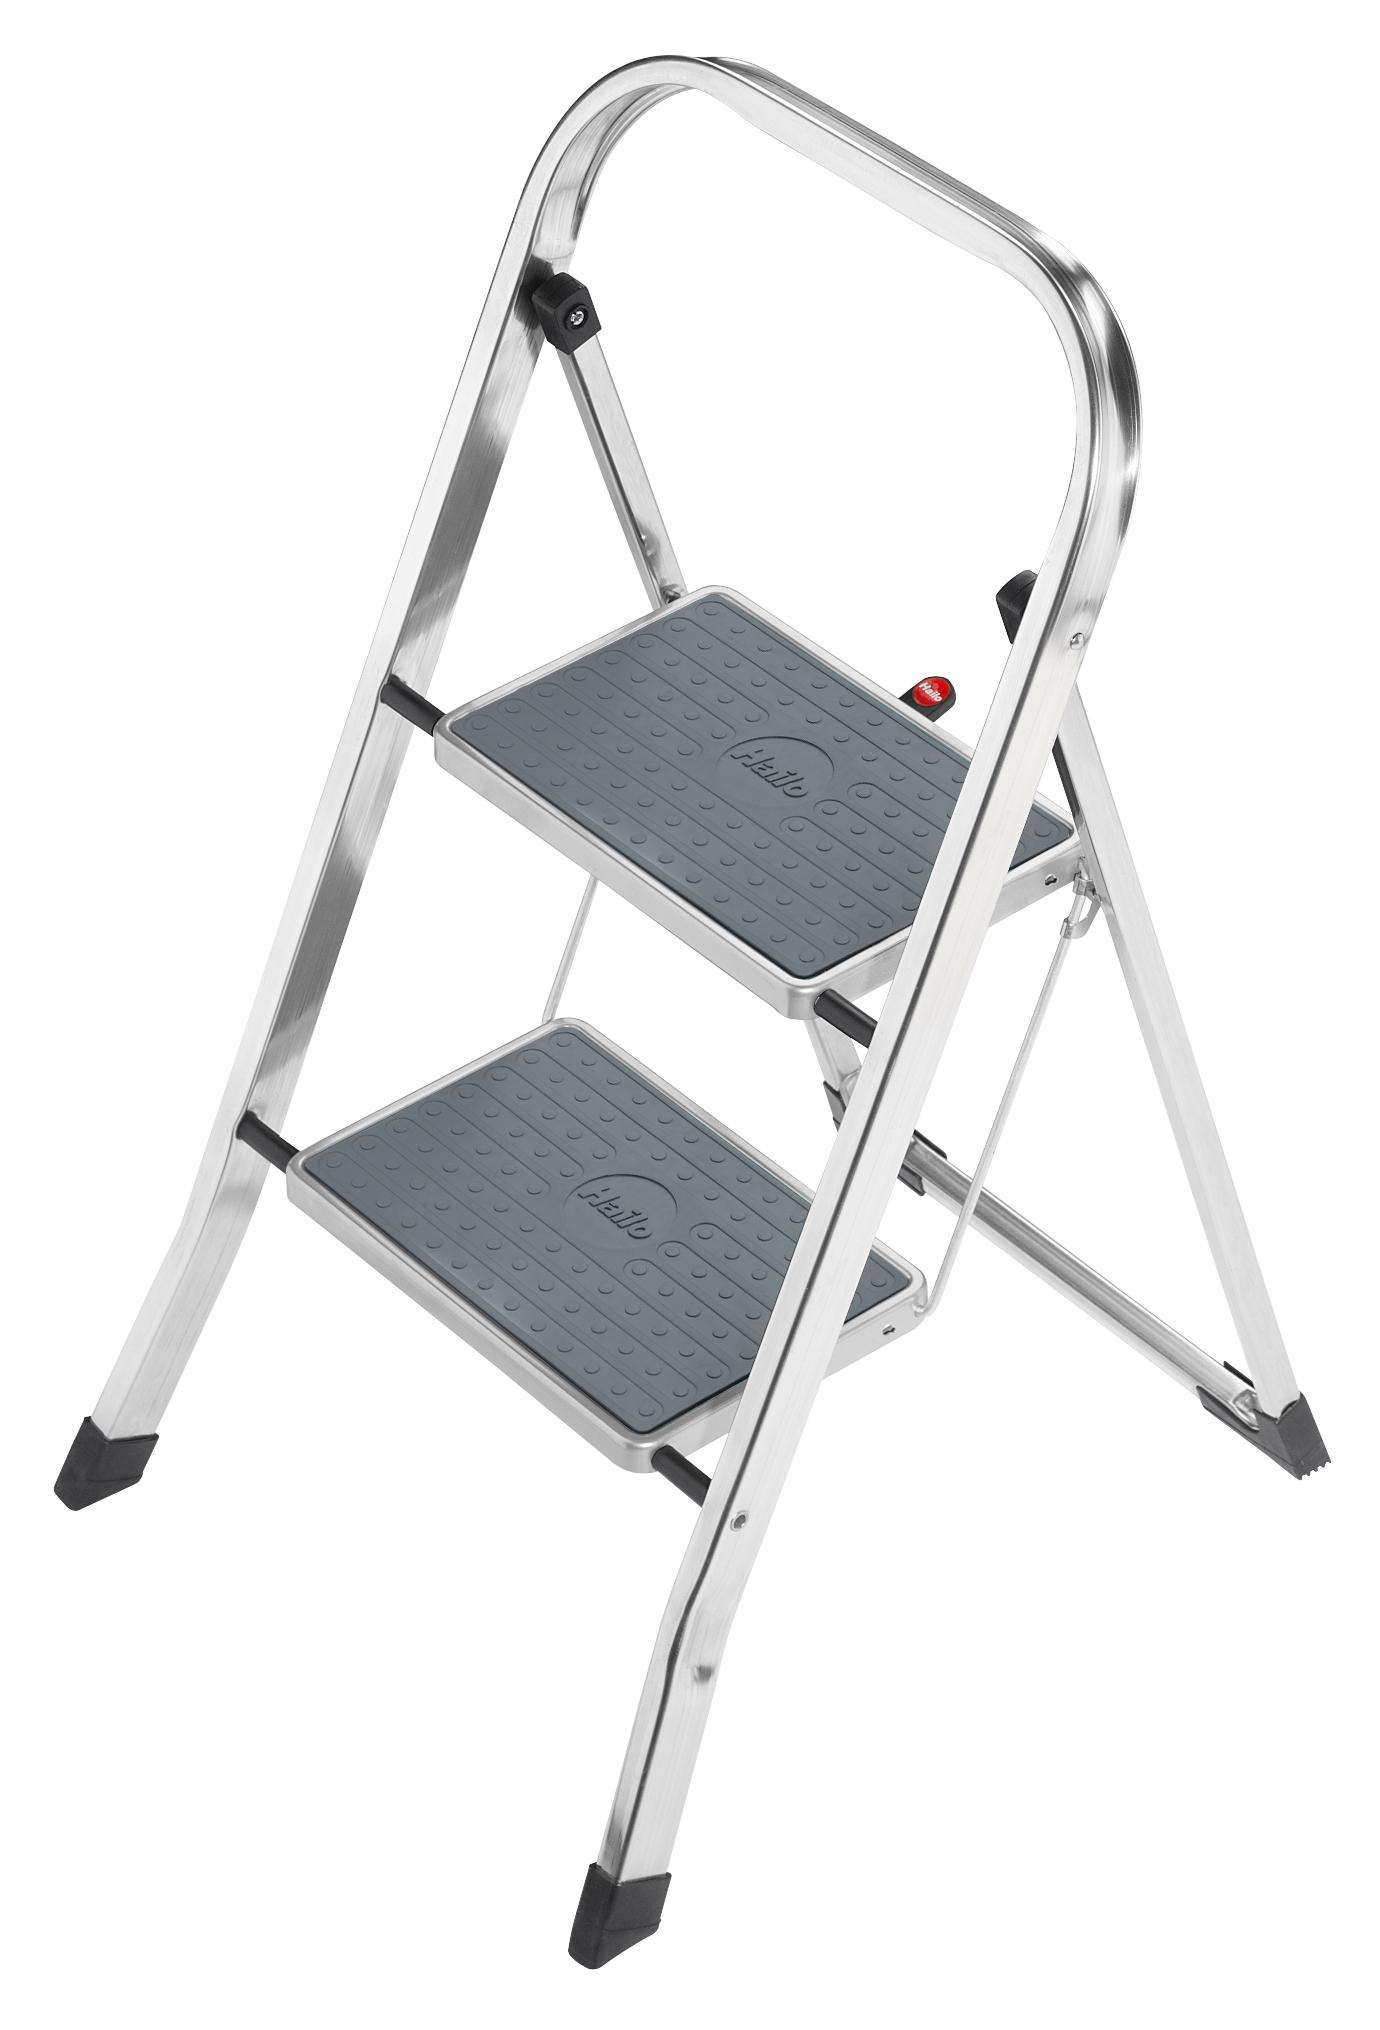 Hailo K30 Folding Ladder 2 to 3 Steps Sturdy/Stable/Steady Aluminium Light Weight Step Stool